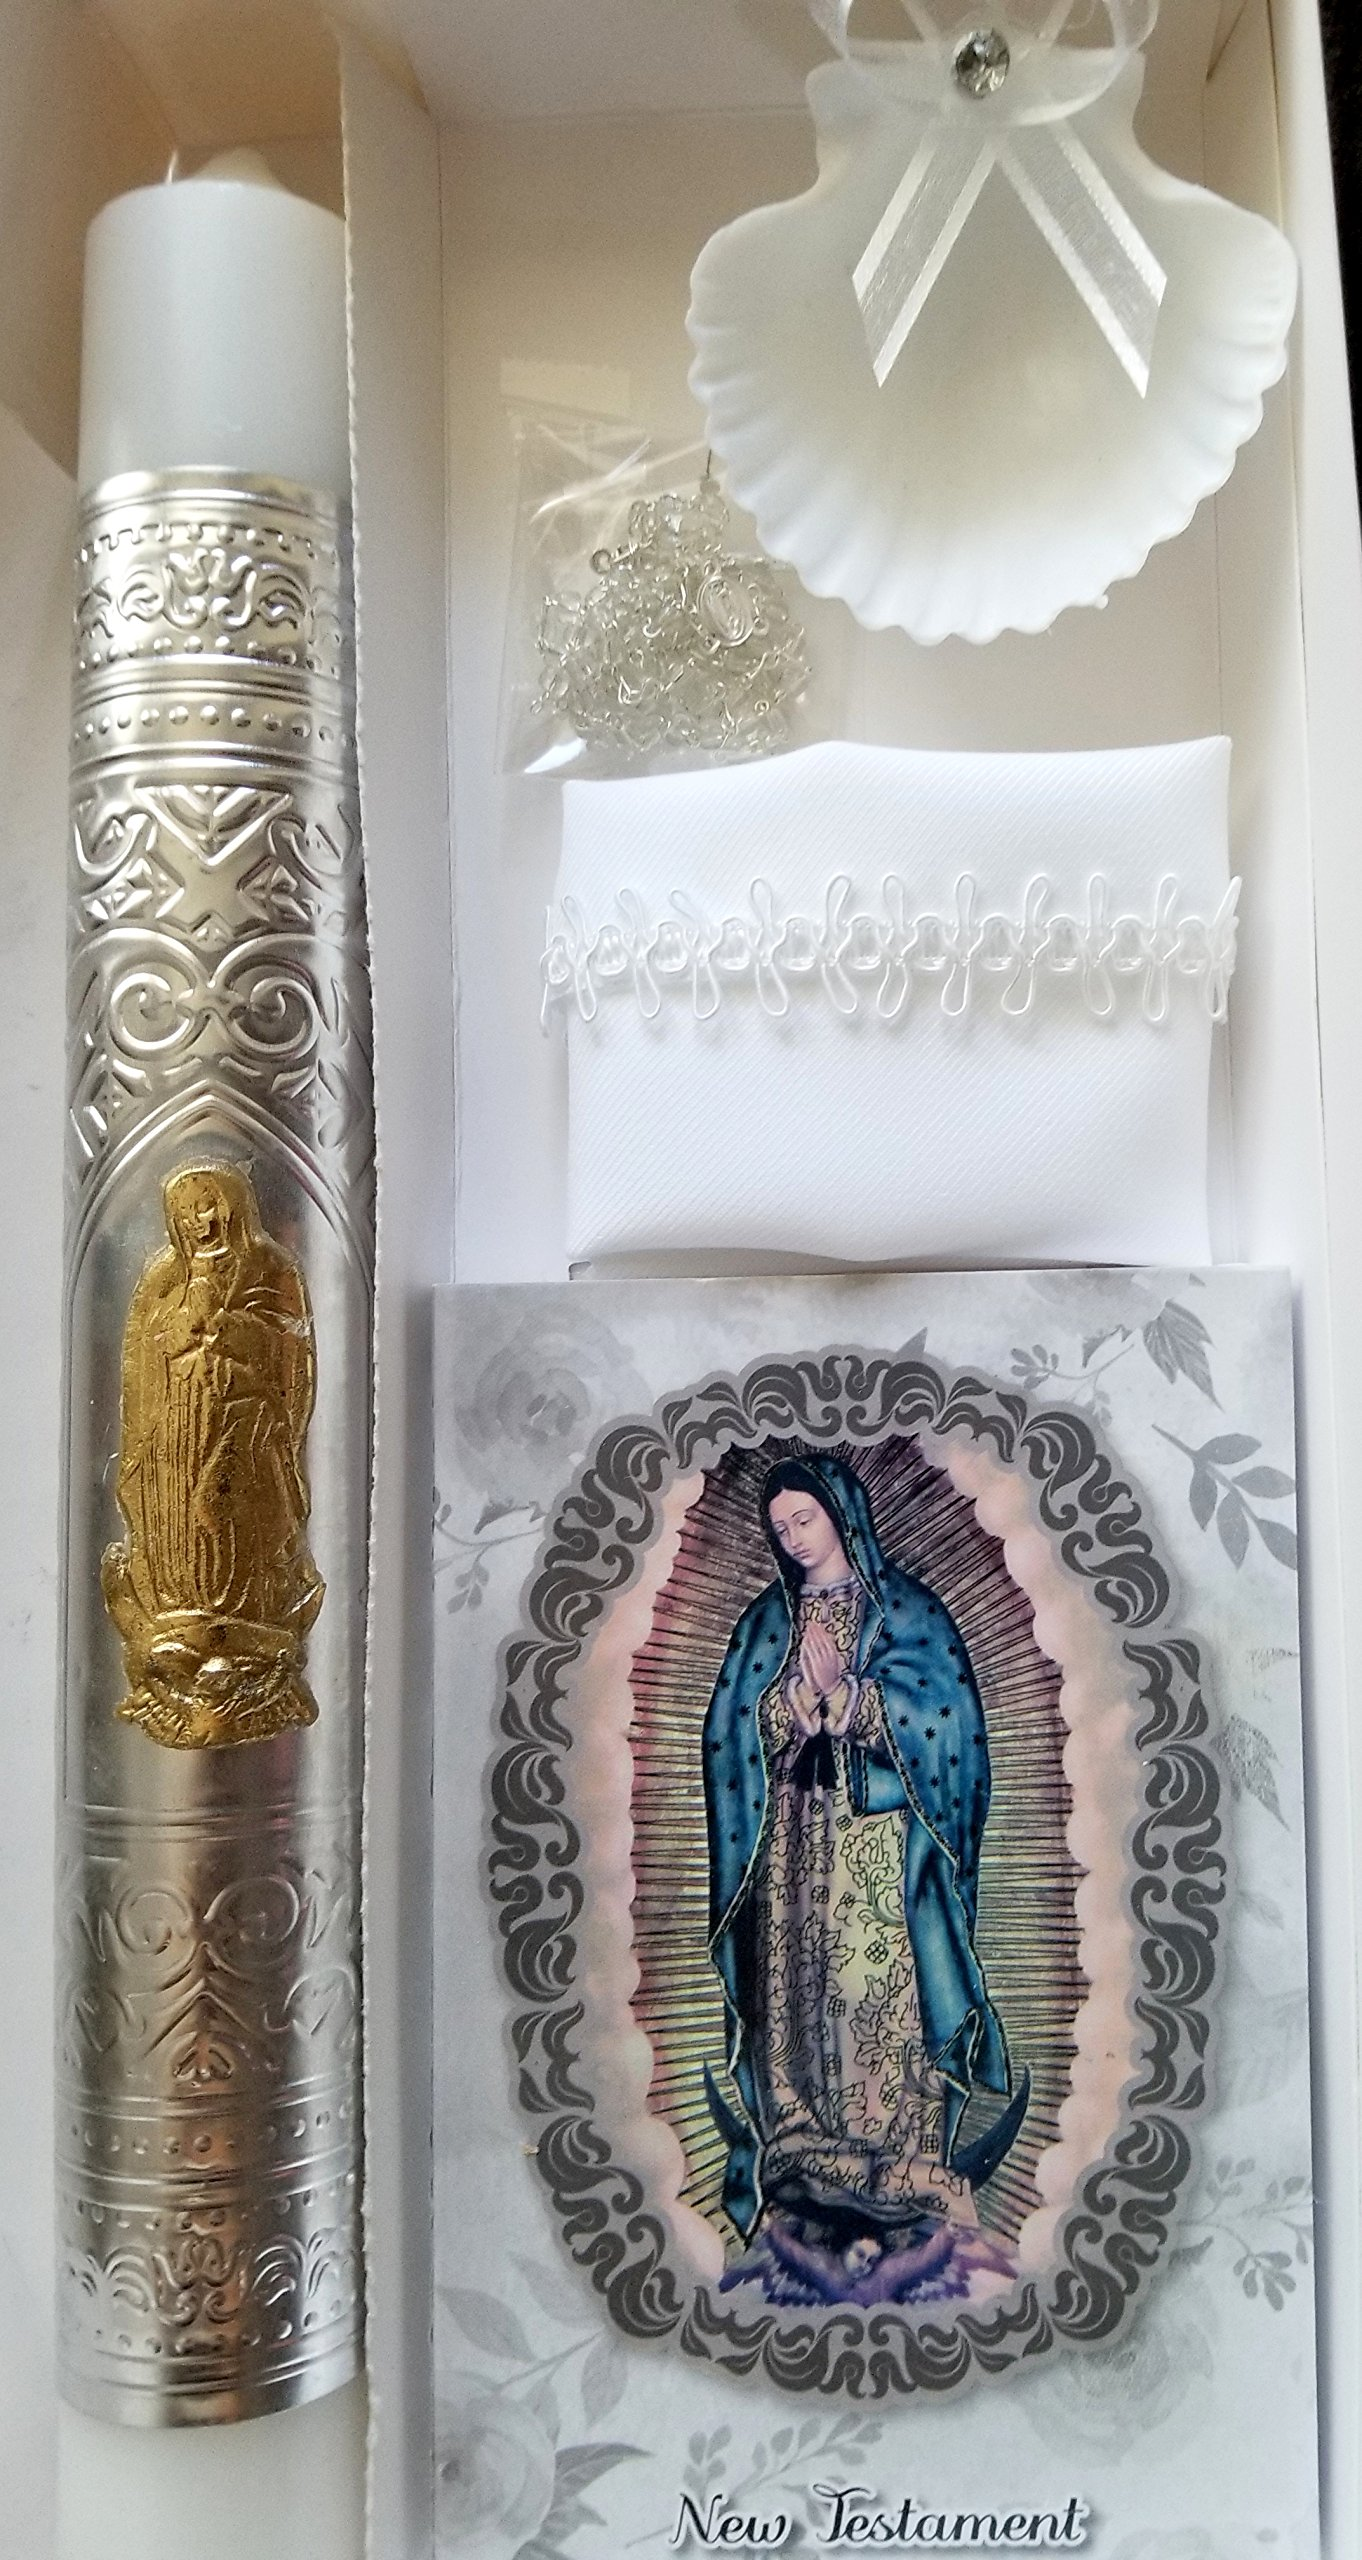 English Handmade Christening/Baptism Set For Girl, Boy Lady of Guadalupe Virgen : Candle, New Testament, Dry Cloth, Sea Shell, and Rosary -Bautizo Religious Gift